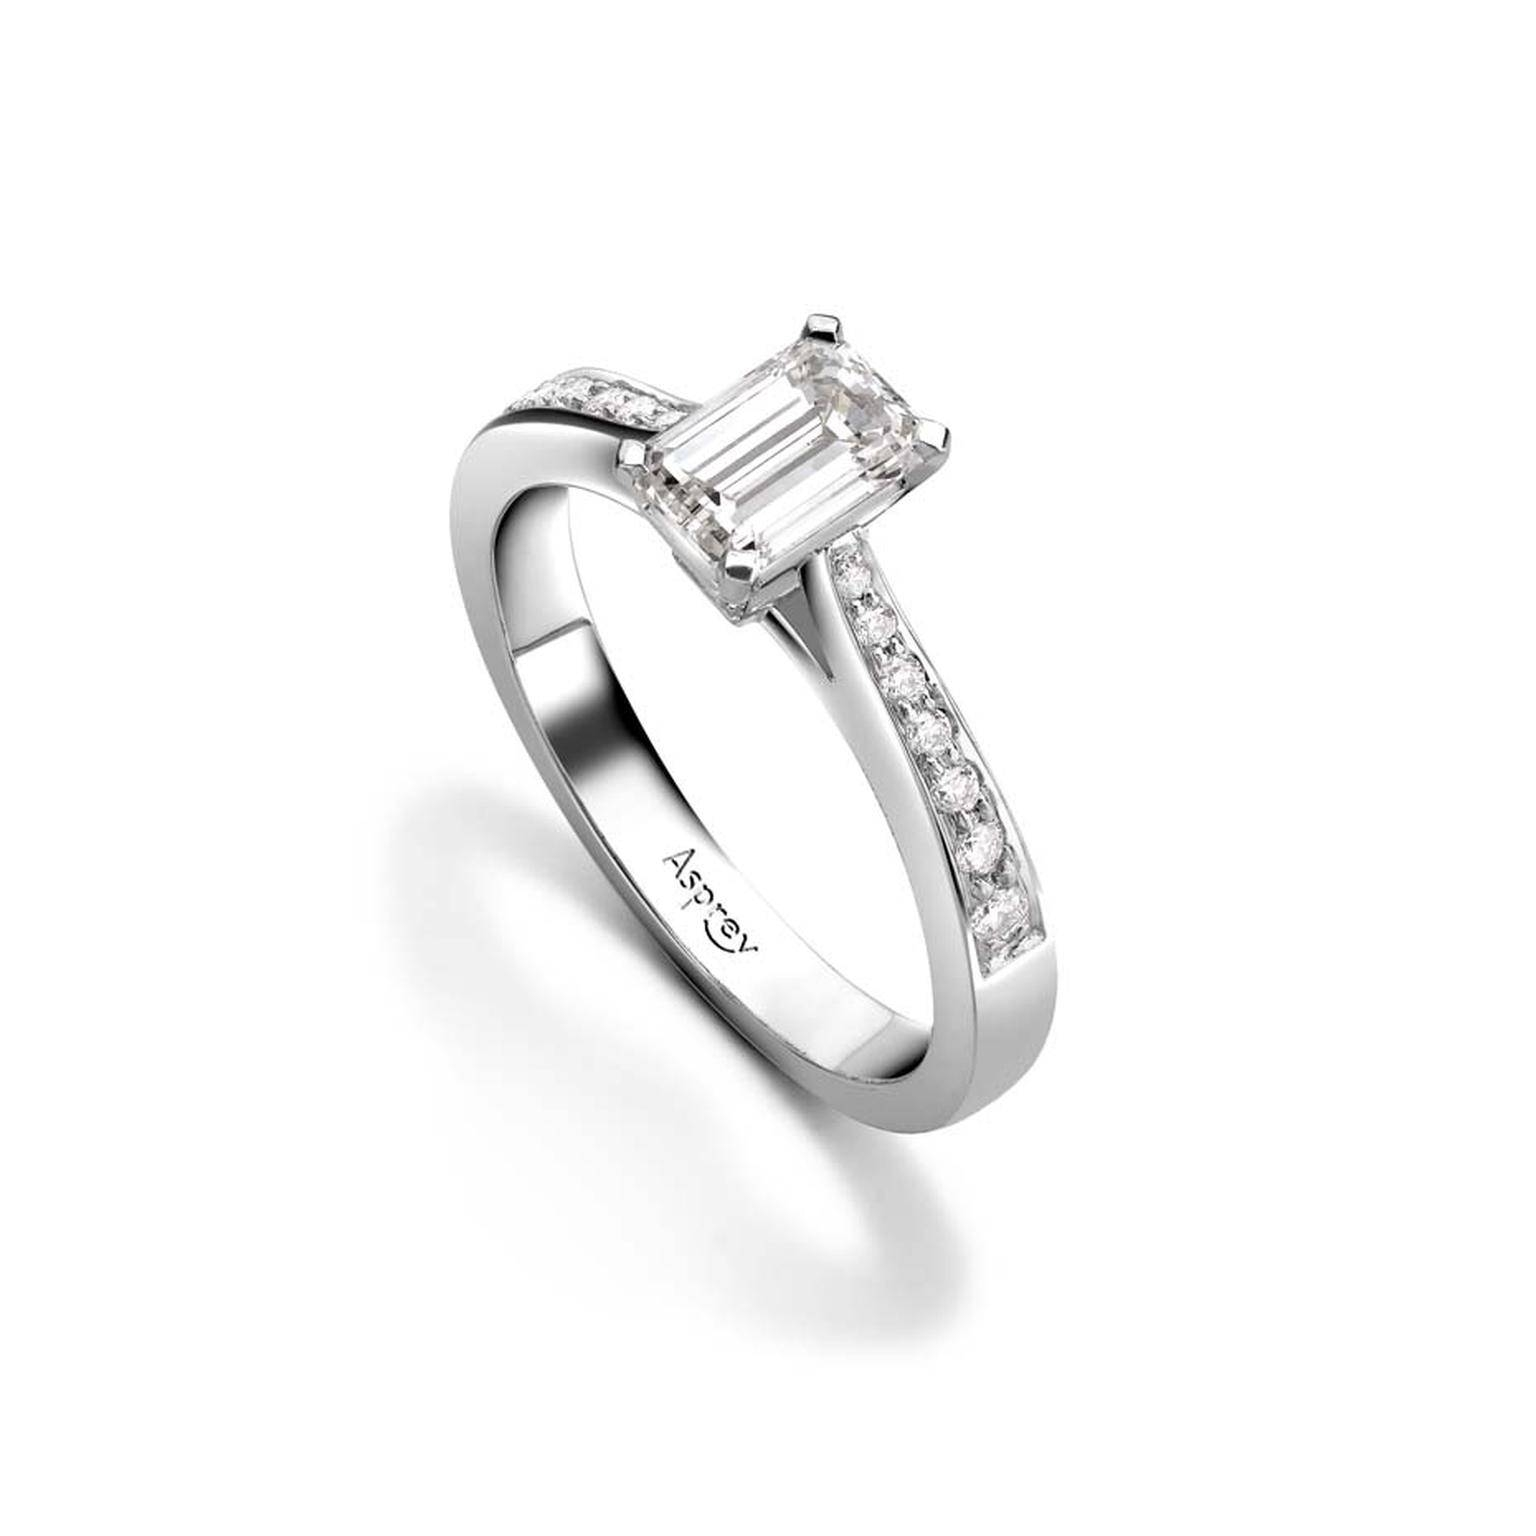 ring wedding rings without diamonds engagement rings flower in wedding rings without diamonds view 12 - Wedding Rings Without Diamonds